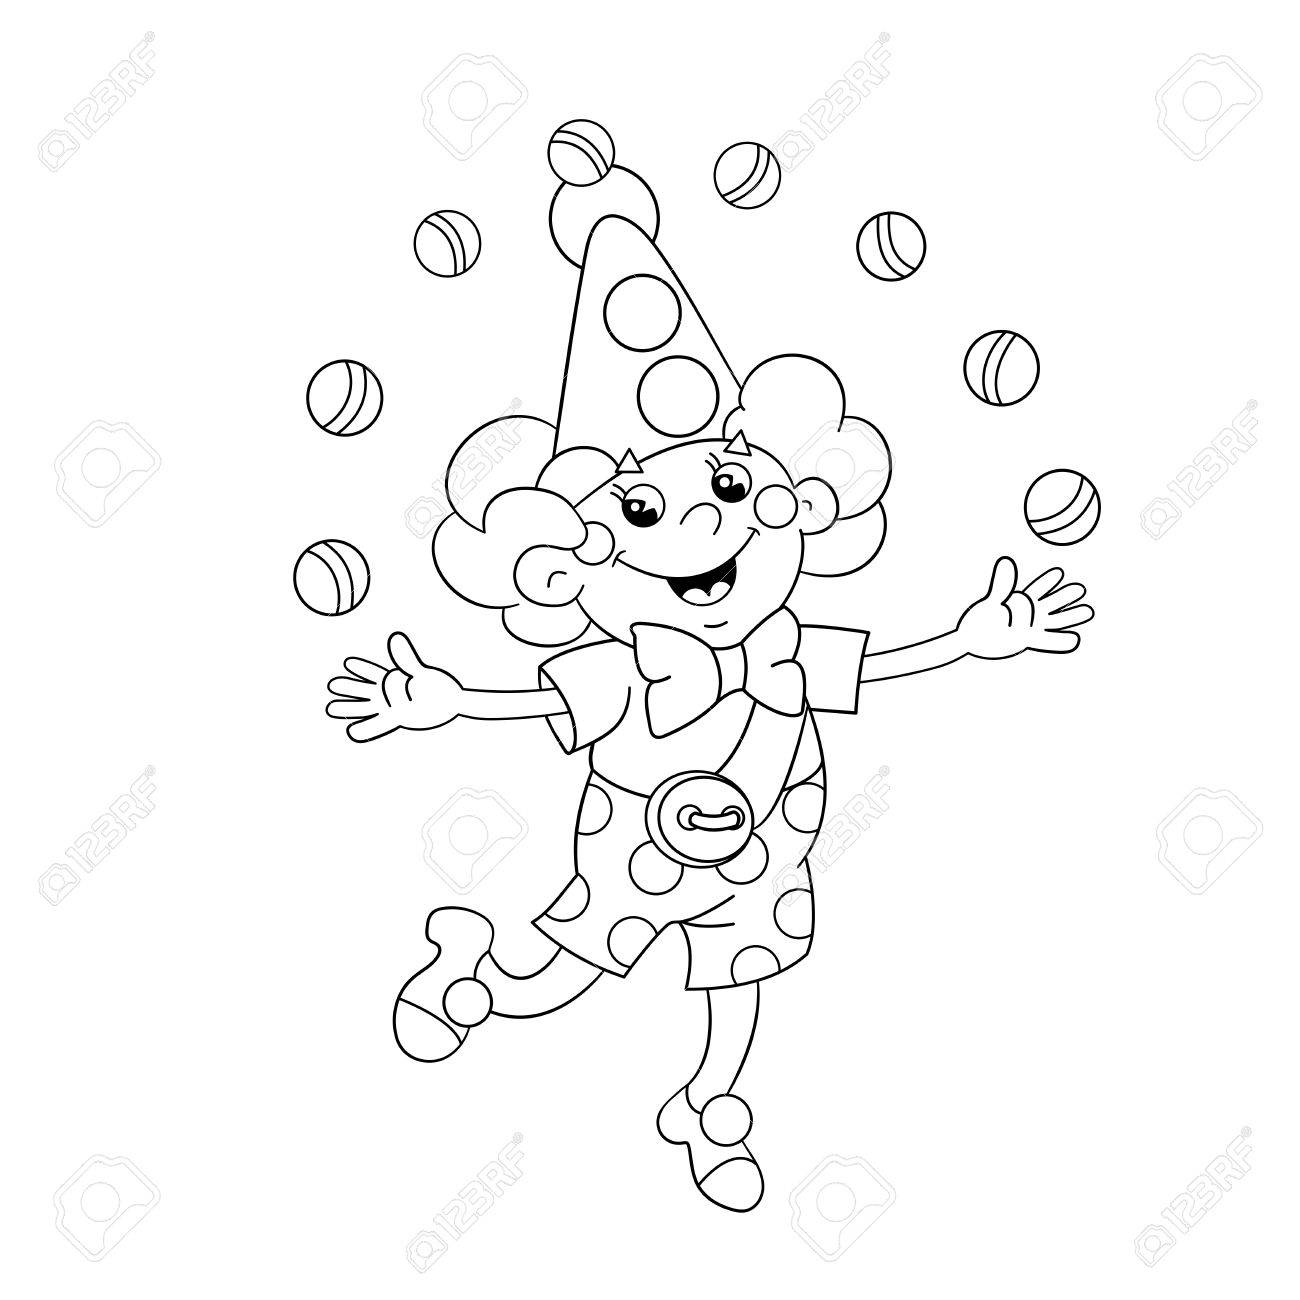 Coloring Page Outline Of A Funny Clown Juggling Balls Royalty Free ...